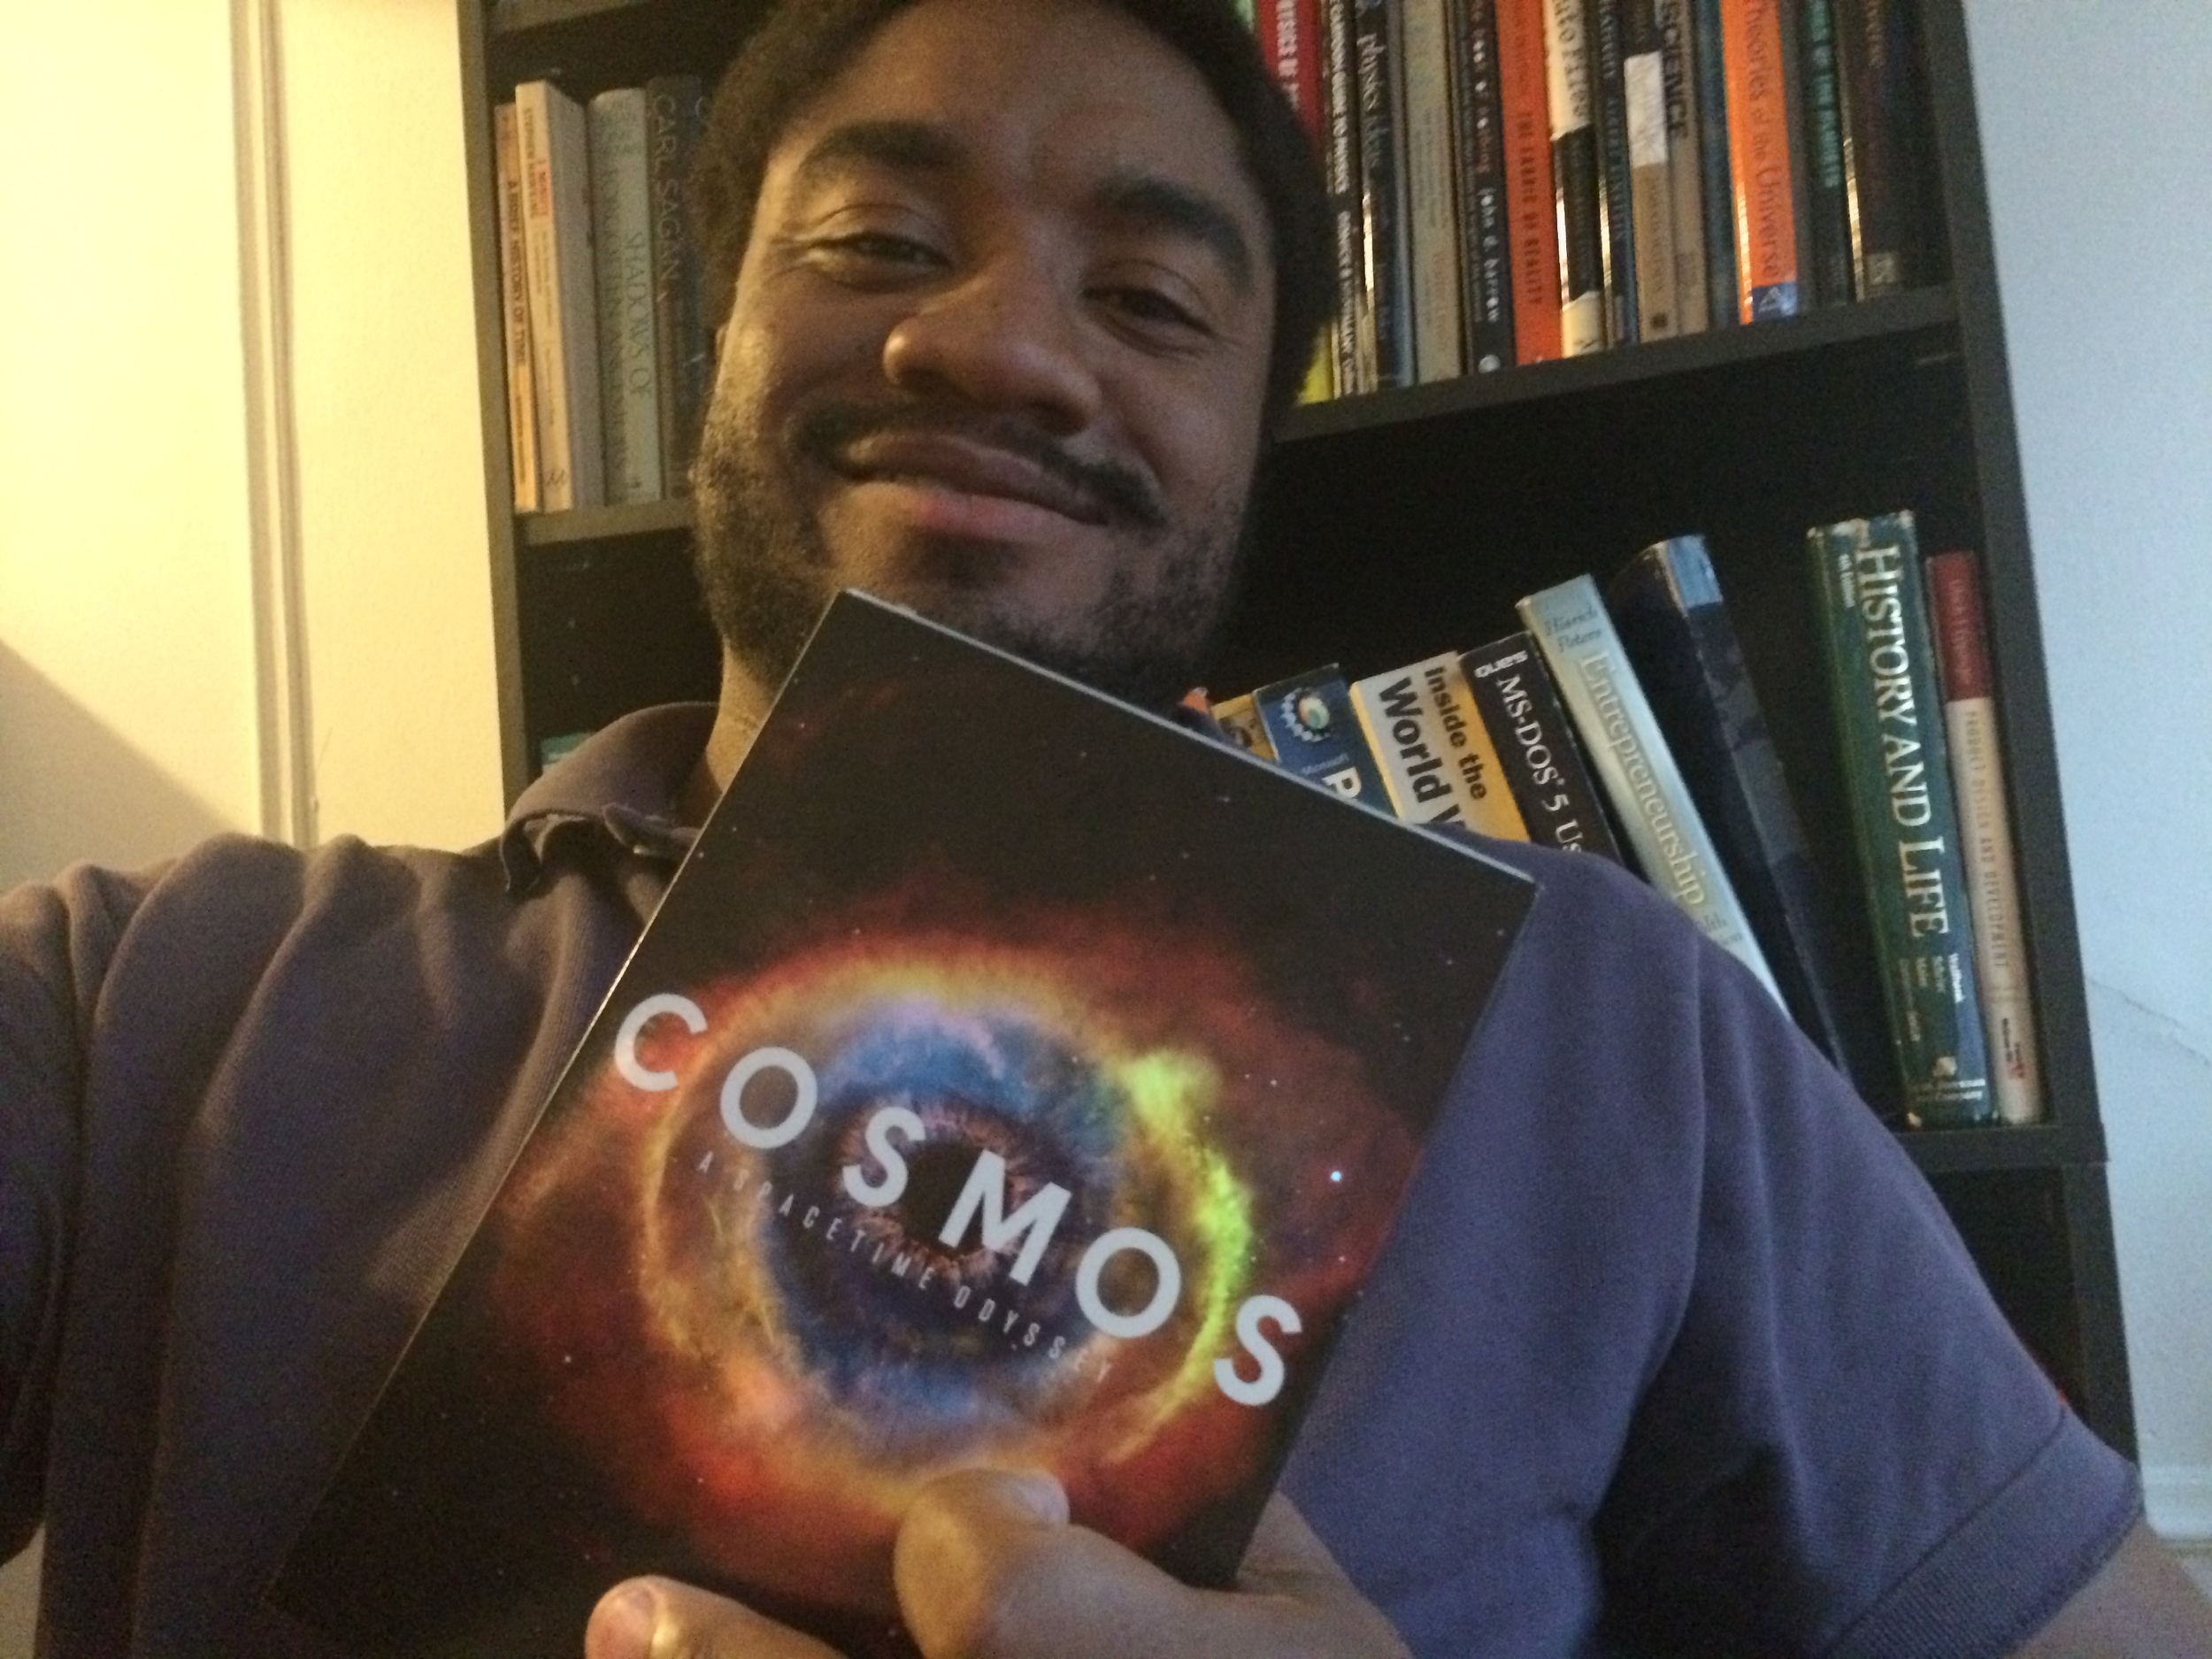 Cosmos was awesome, so I definitely had to get the DVD! Click on the pic to access my Cosmos posts!